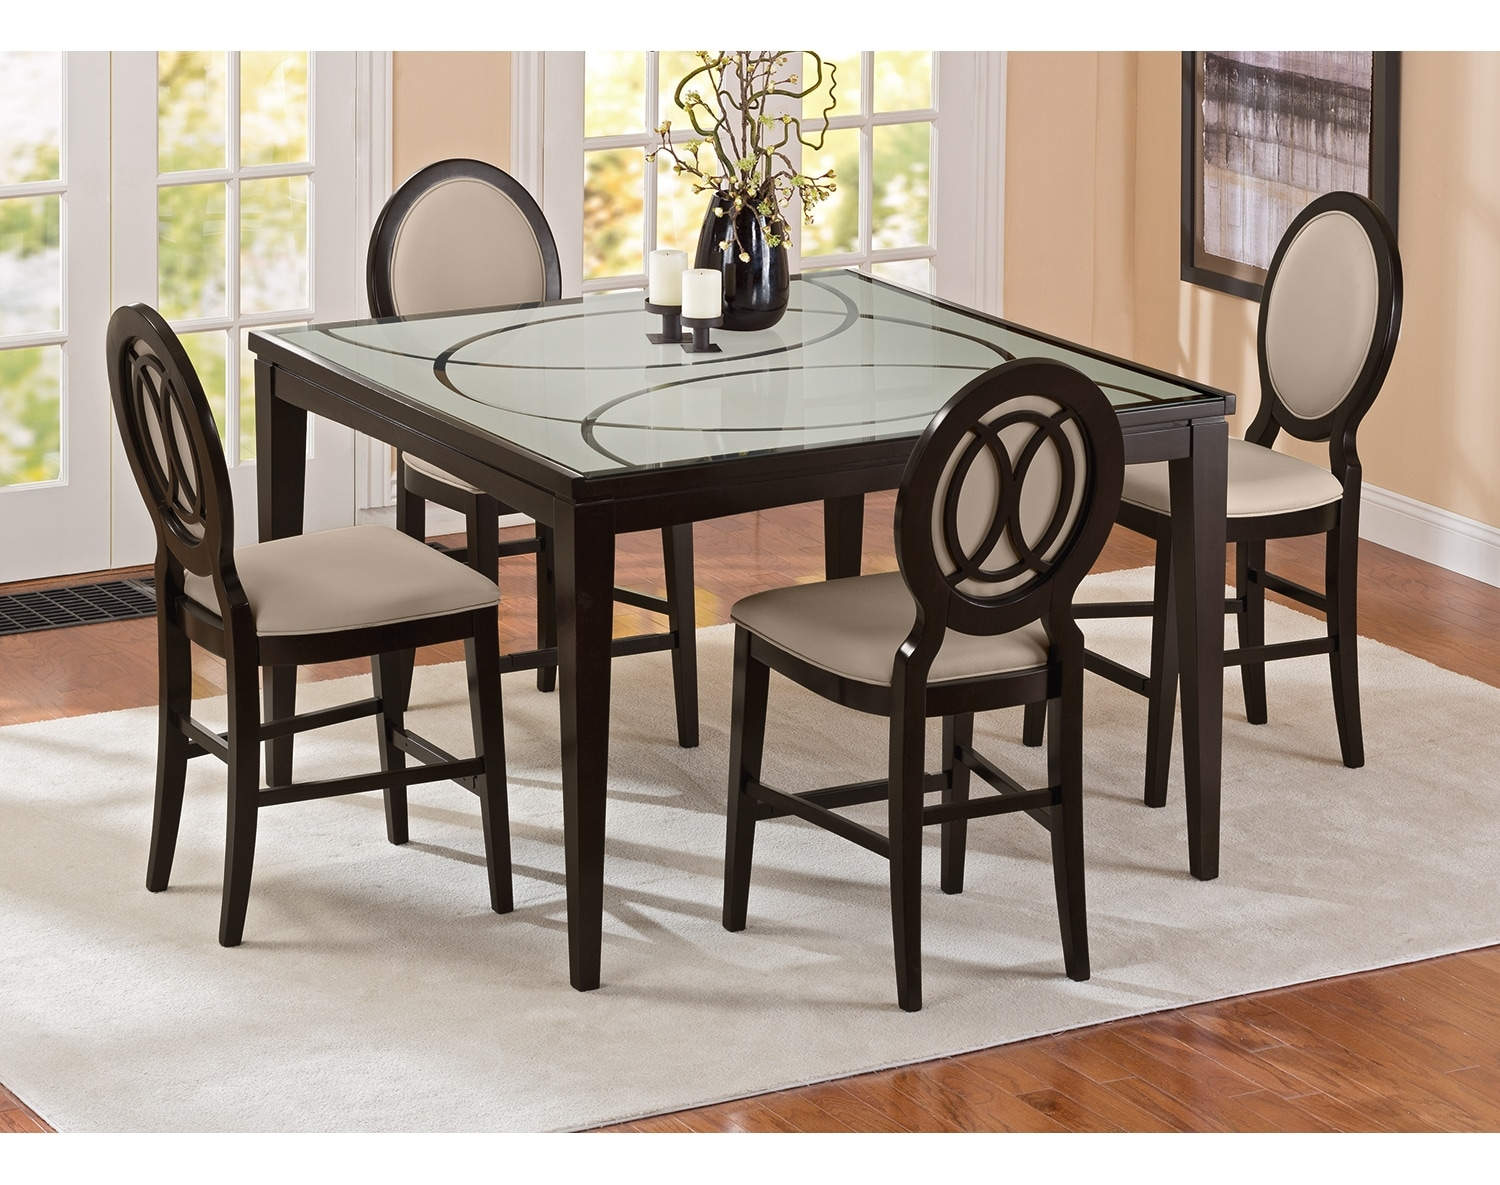 Dining Room Furniture - The Stewart II Collection - Counter-Height Table